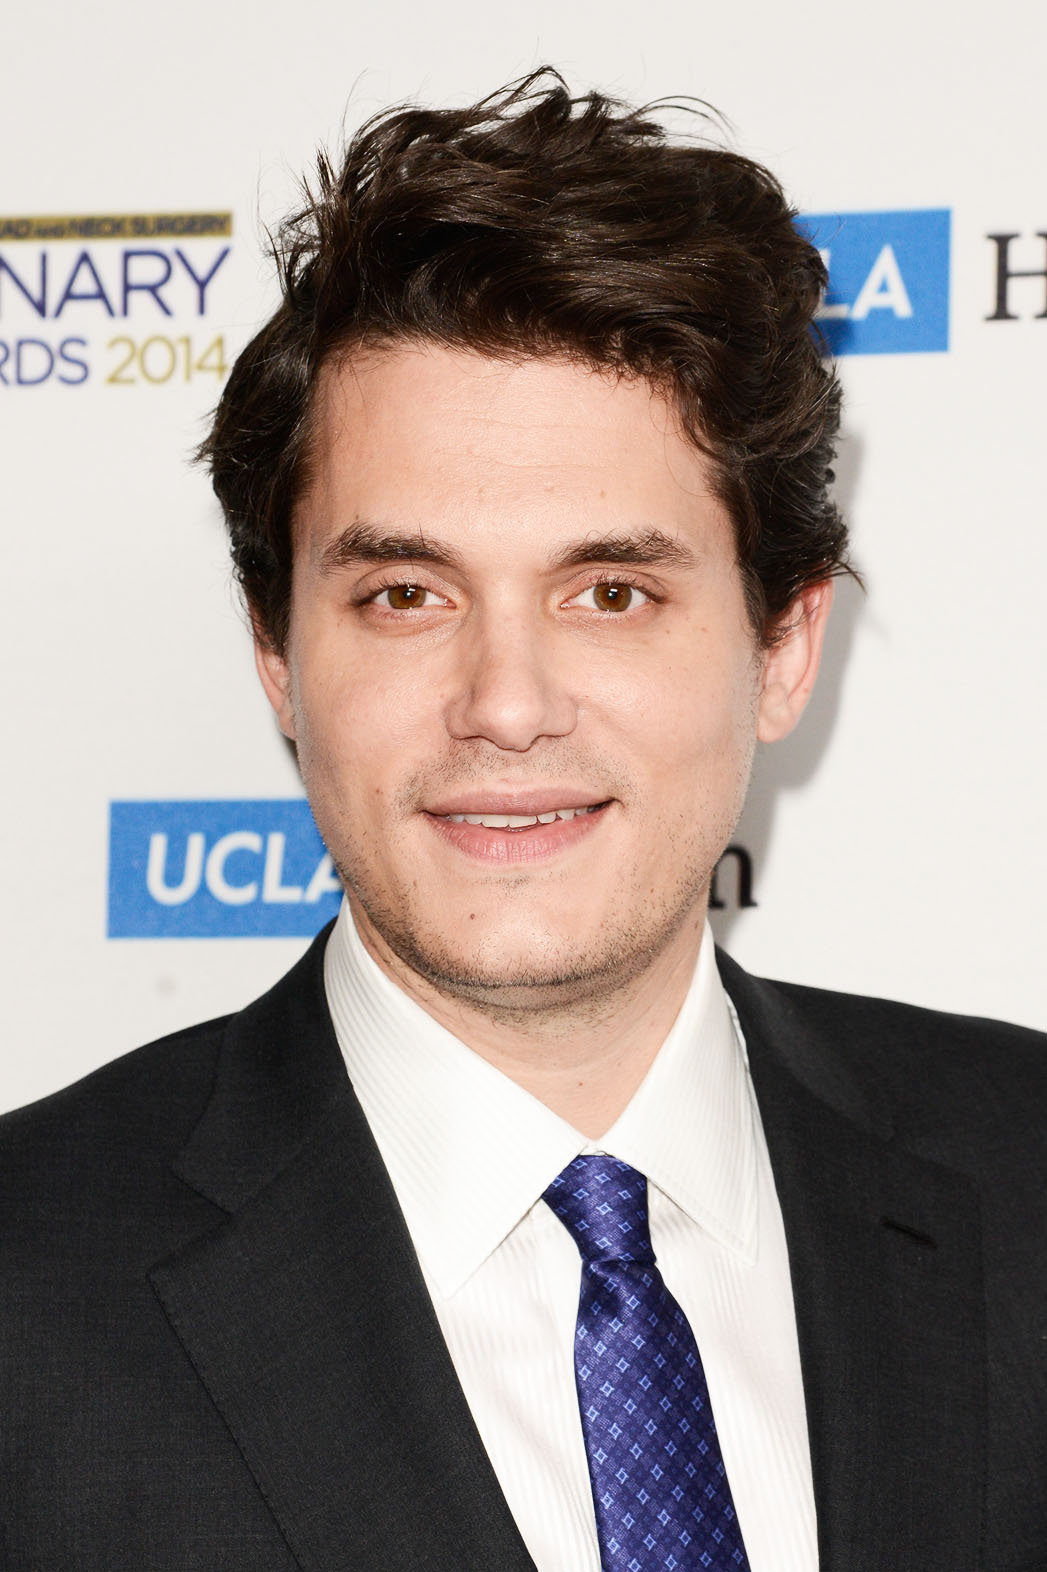 John Mayer UCLA Event - P 2014